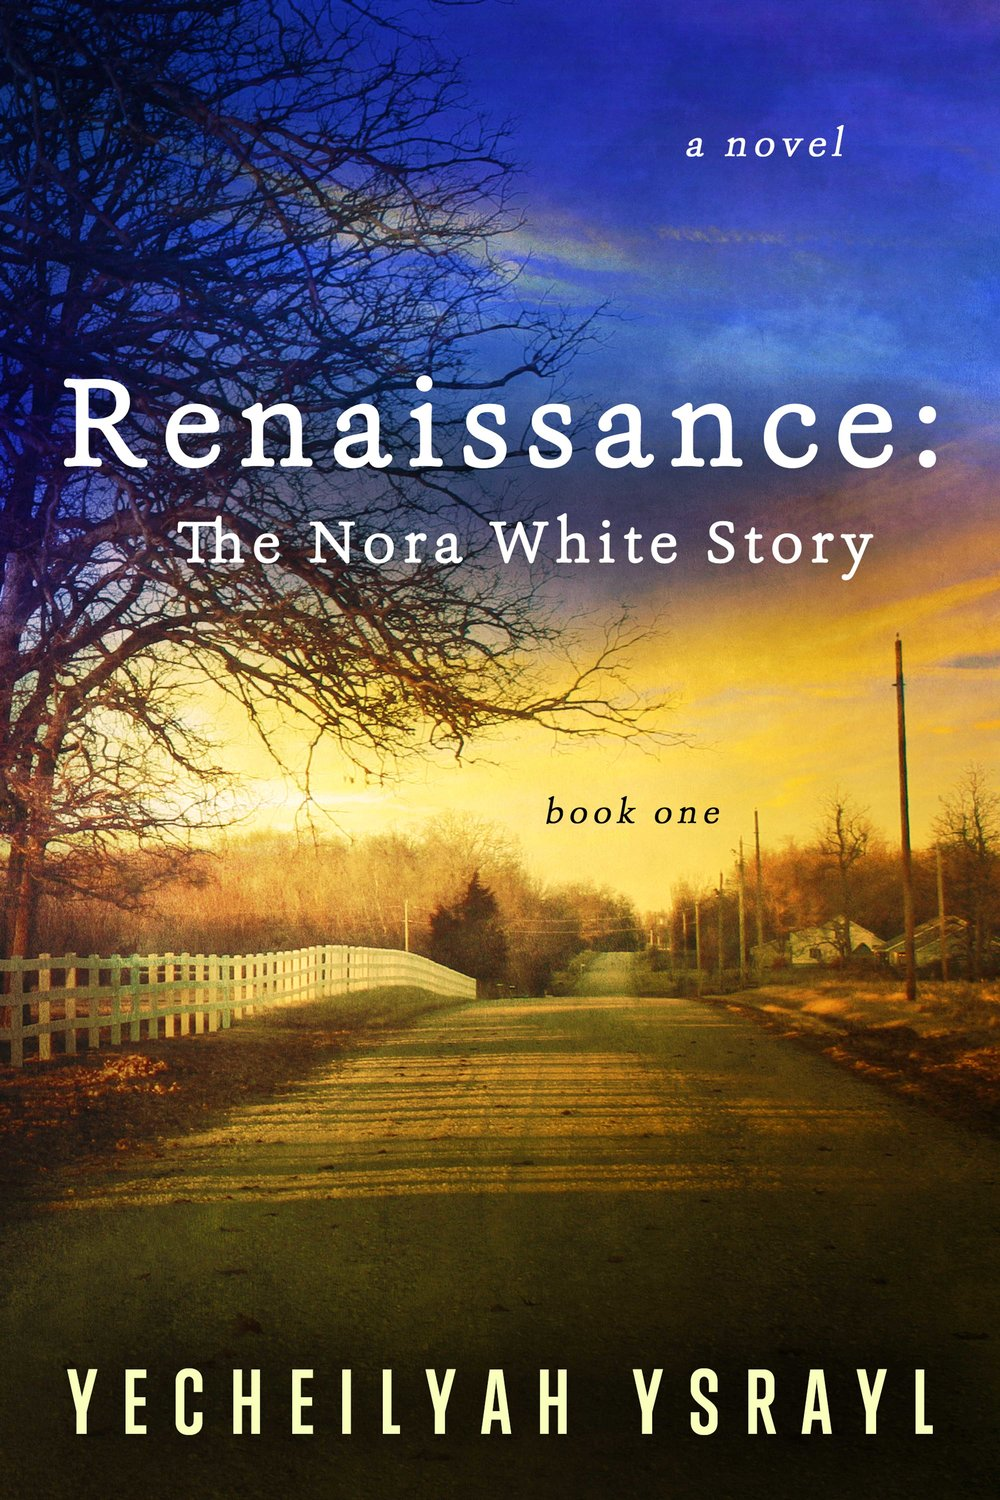 When seventeen-year-old Nora White successfully graduates High School in 1922 Mississippi and is College bound, everyone is overjoyed and excited. Everyone except Nora. She dreams of Harlem, Cotton Clubs, Fancy Dresses, and Langston Hughes. For years, she's sat under Mr. Oak, the big oak tree on the plush green grass of her families five acres, and daydreamed of The Black Mecca. The ambitious, young Nora is fascinated by the prospect of being a famous writer in The Harlem Renaissance and decides... - Keep Reading